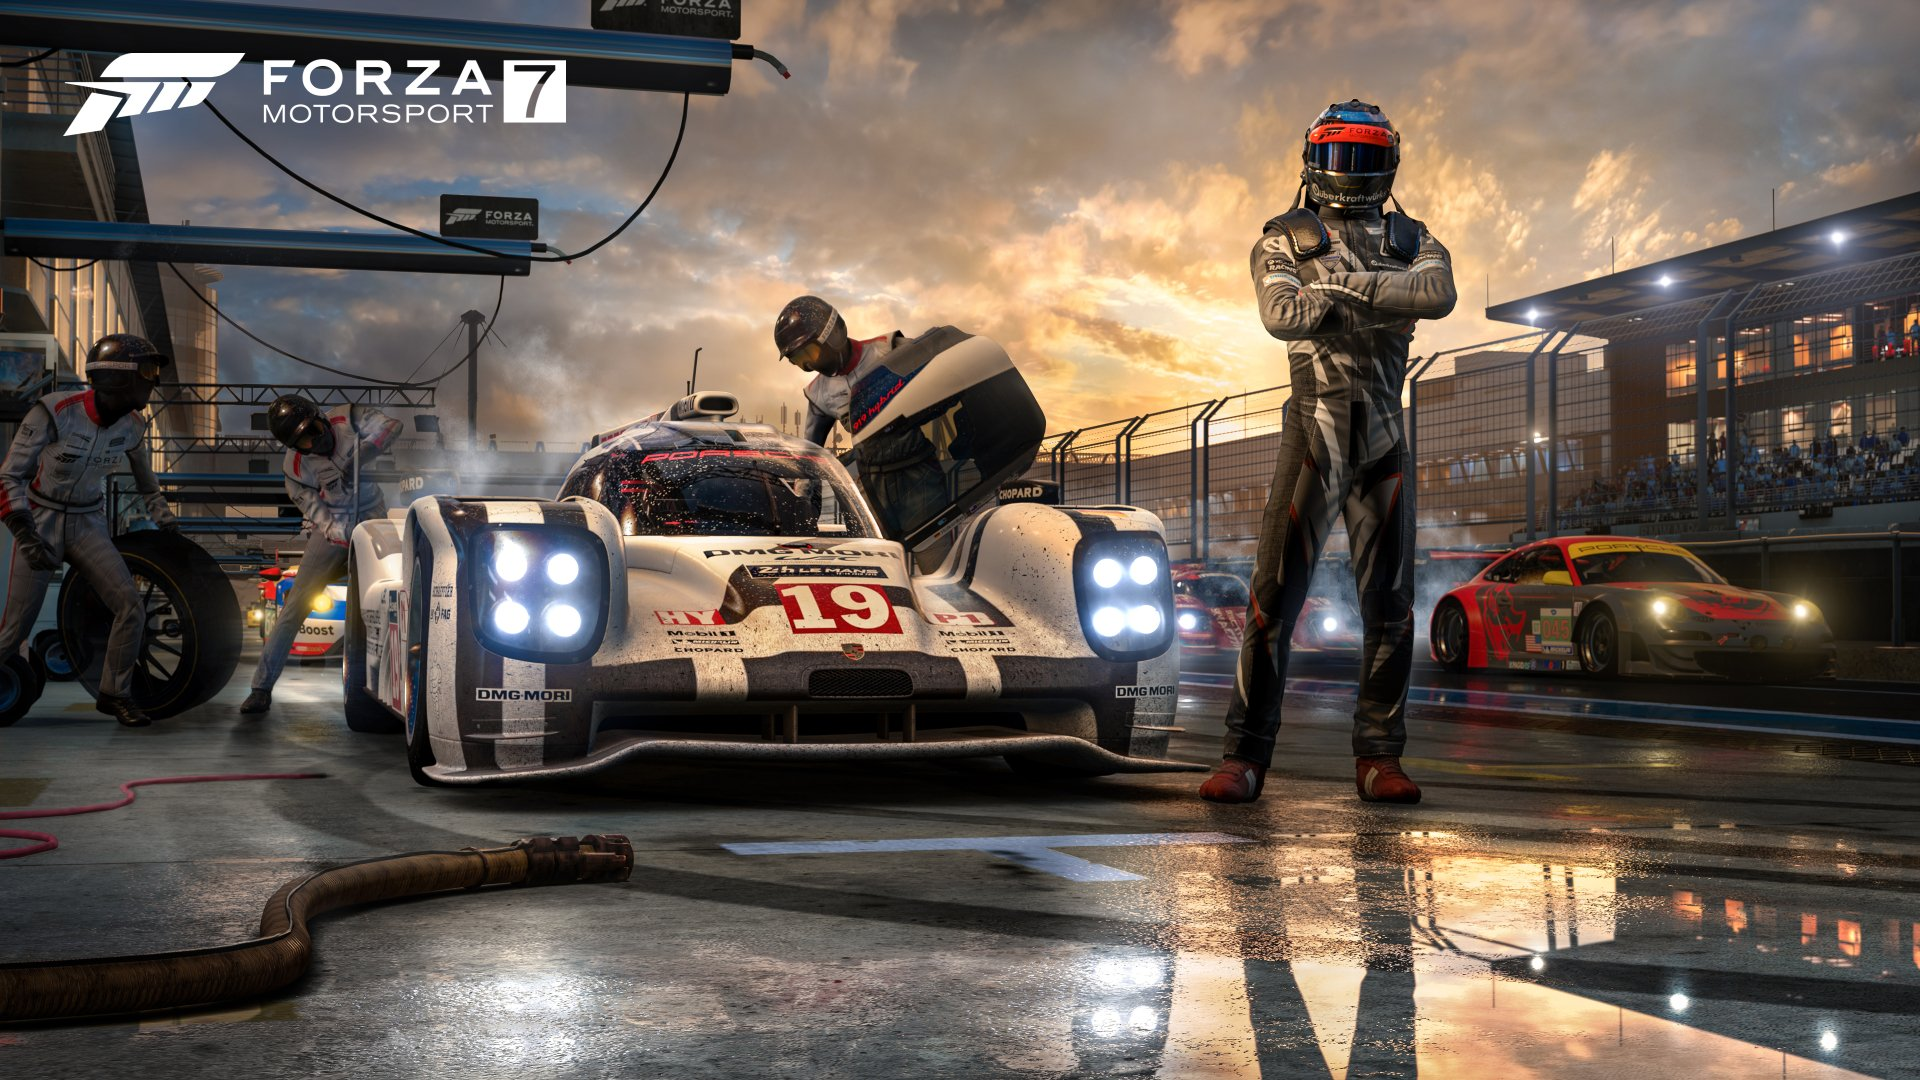 36 Forza Motorsport 7 Hd Wallpapers Background Images Wallpaper Abyss